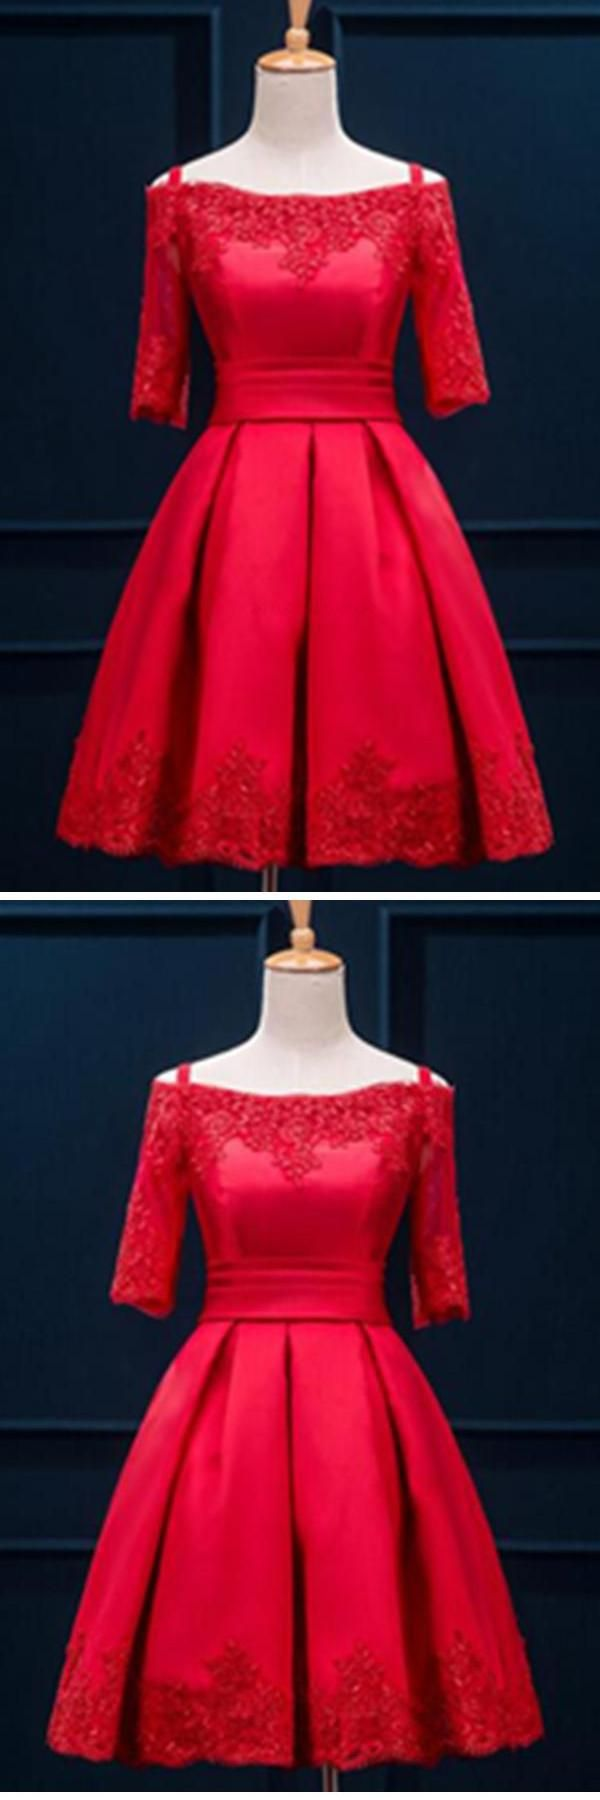 Prom dress red lace homecoming dress short homecoming dress lace